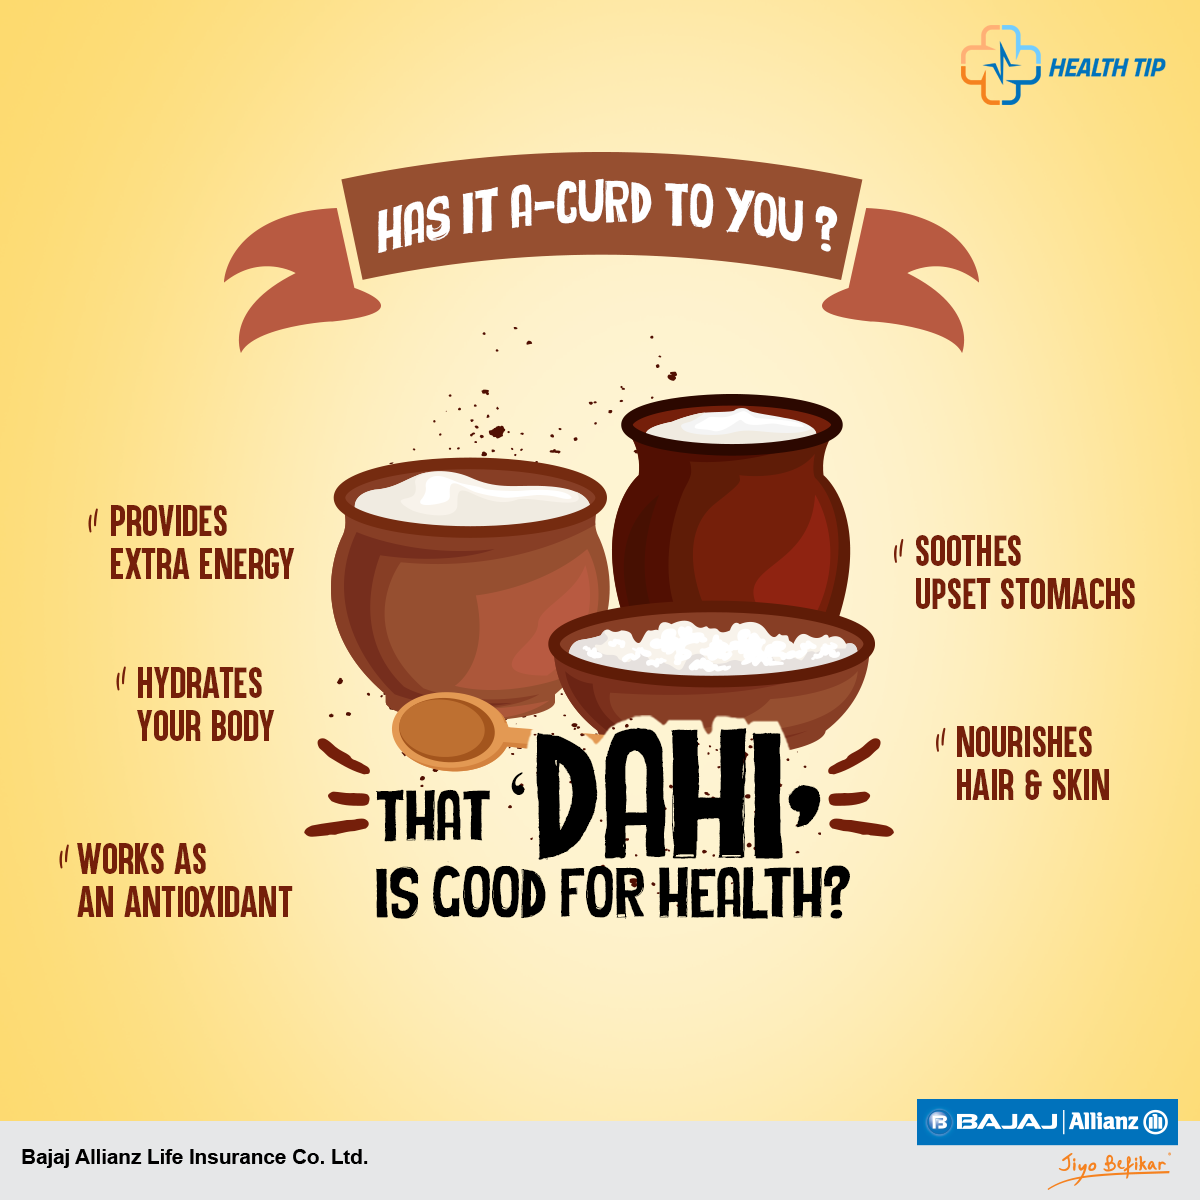 The sun is high. The temperatures are soaring. But why worry? For curd is here! Keep your body healthy during the harsh Indian summers. Read all about its health benefits. #HealthTips